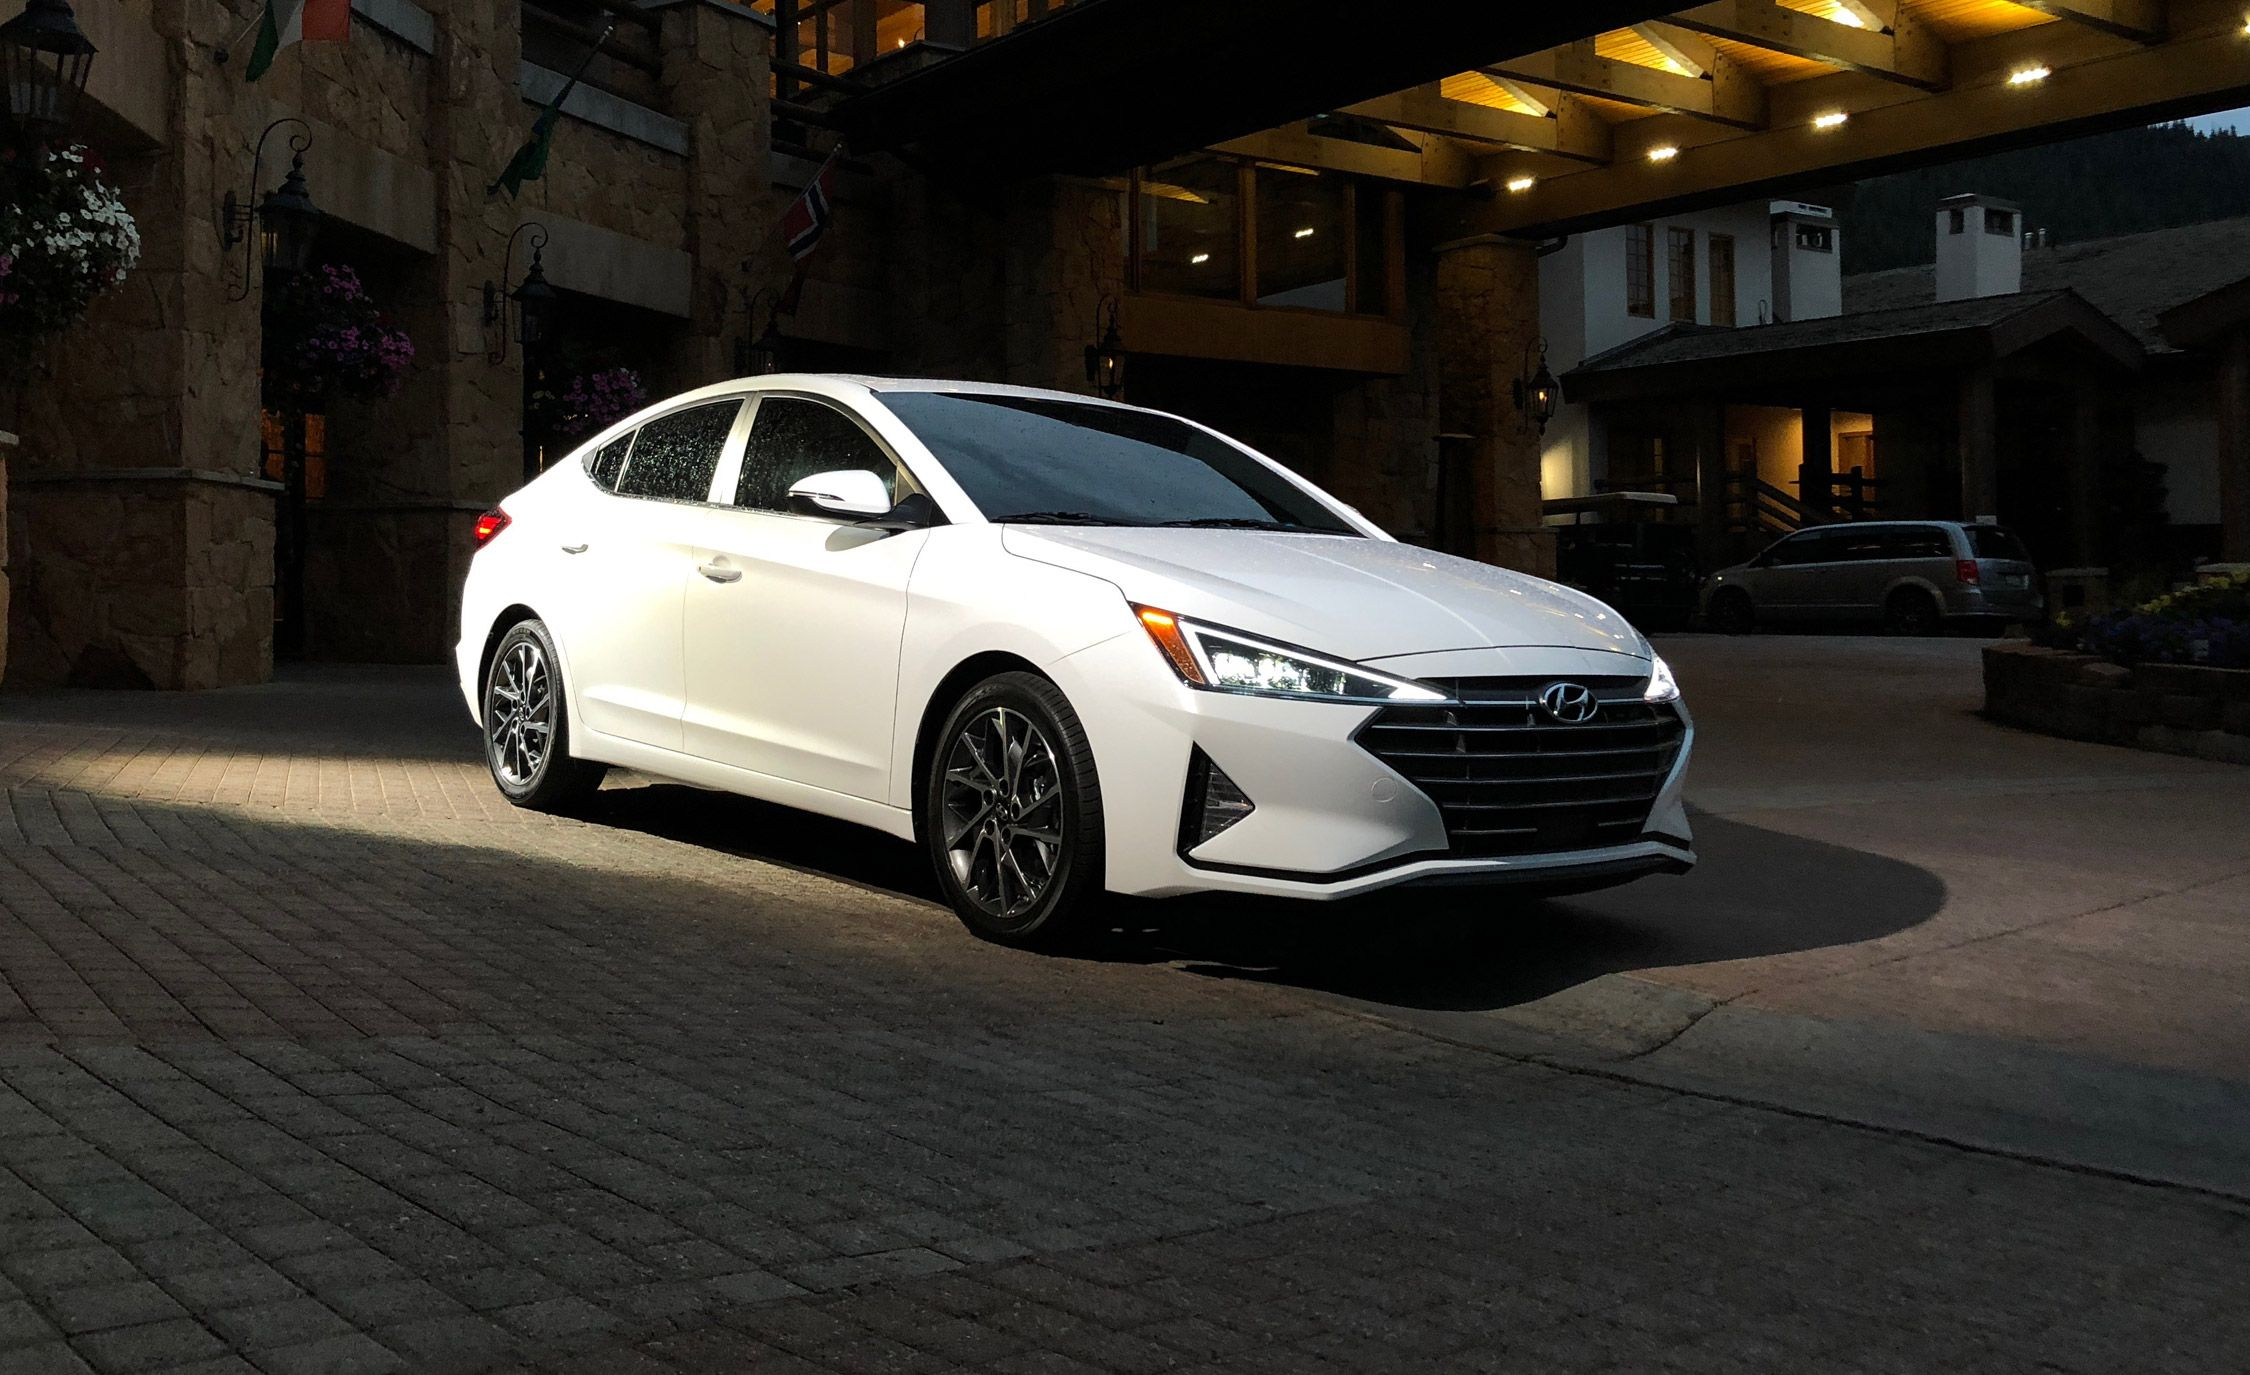 2019 Hyundai Elantra Sedan Has New Sheetmetal, More Safety Gear